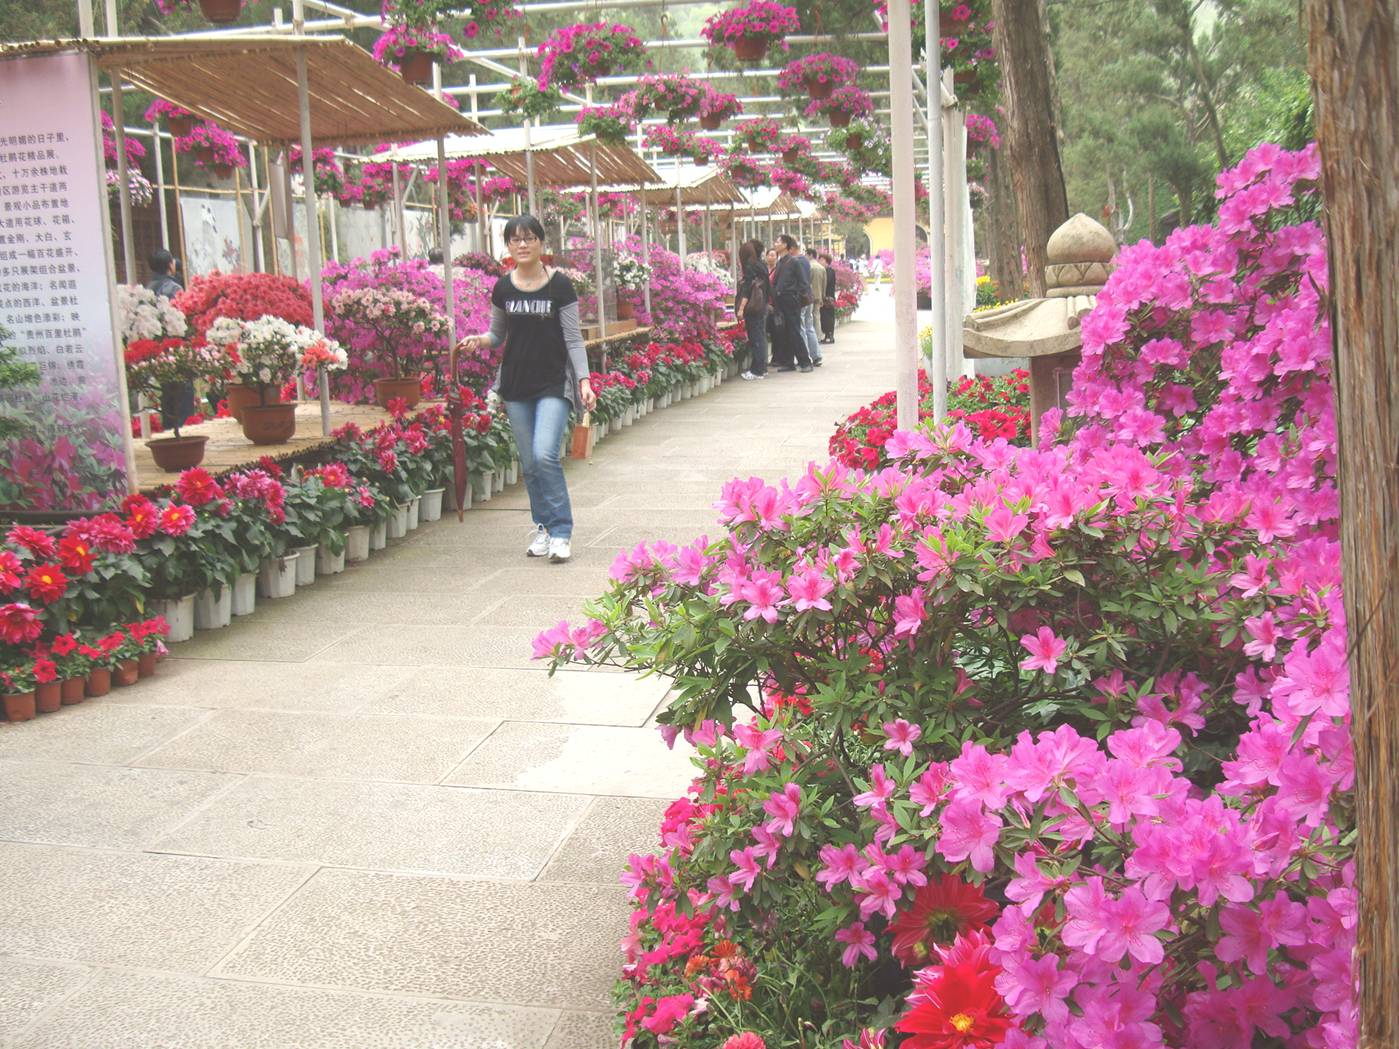 Picture:  The display of flowers in Xi Hui Park, Wuxi, China